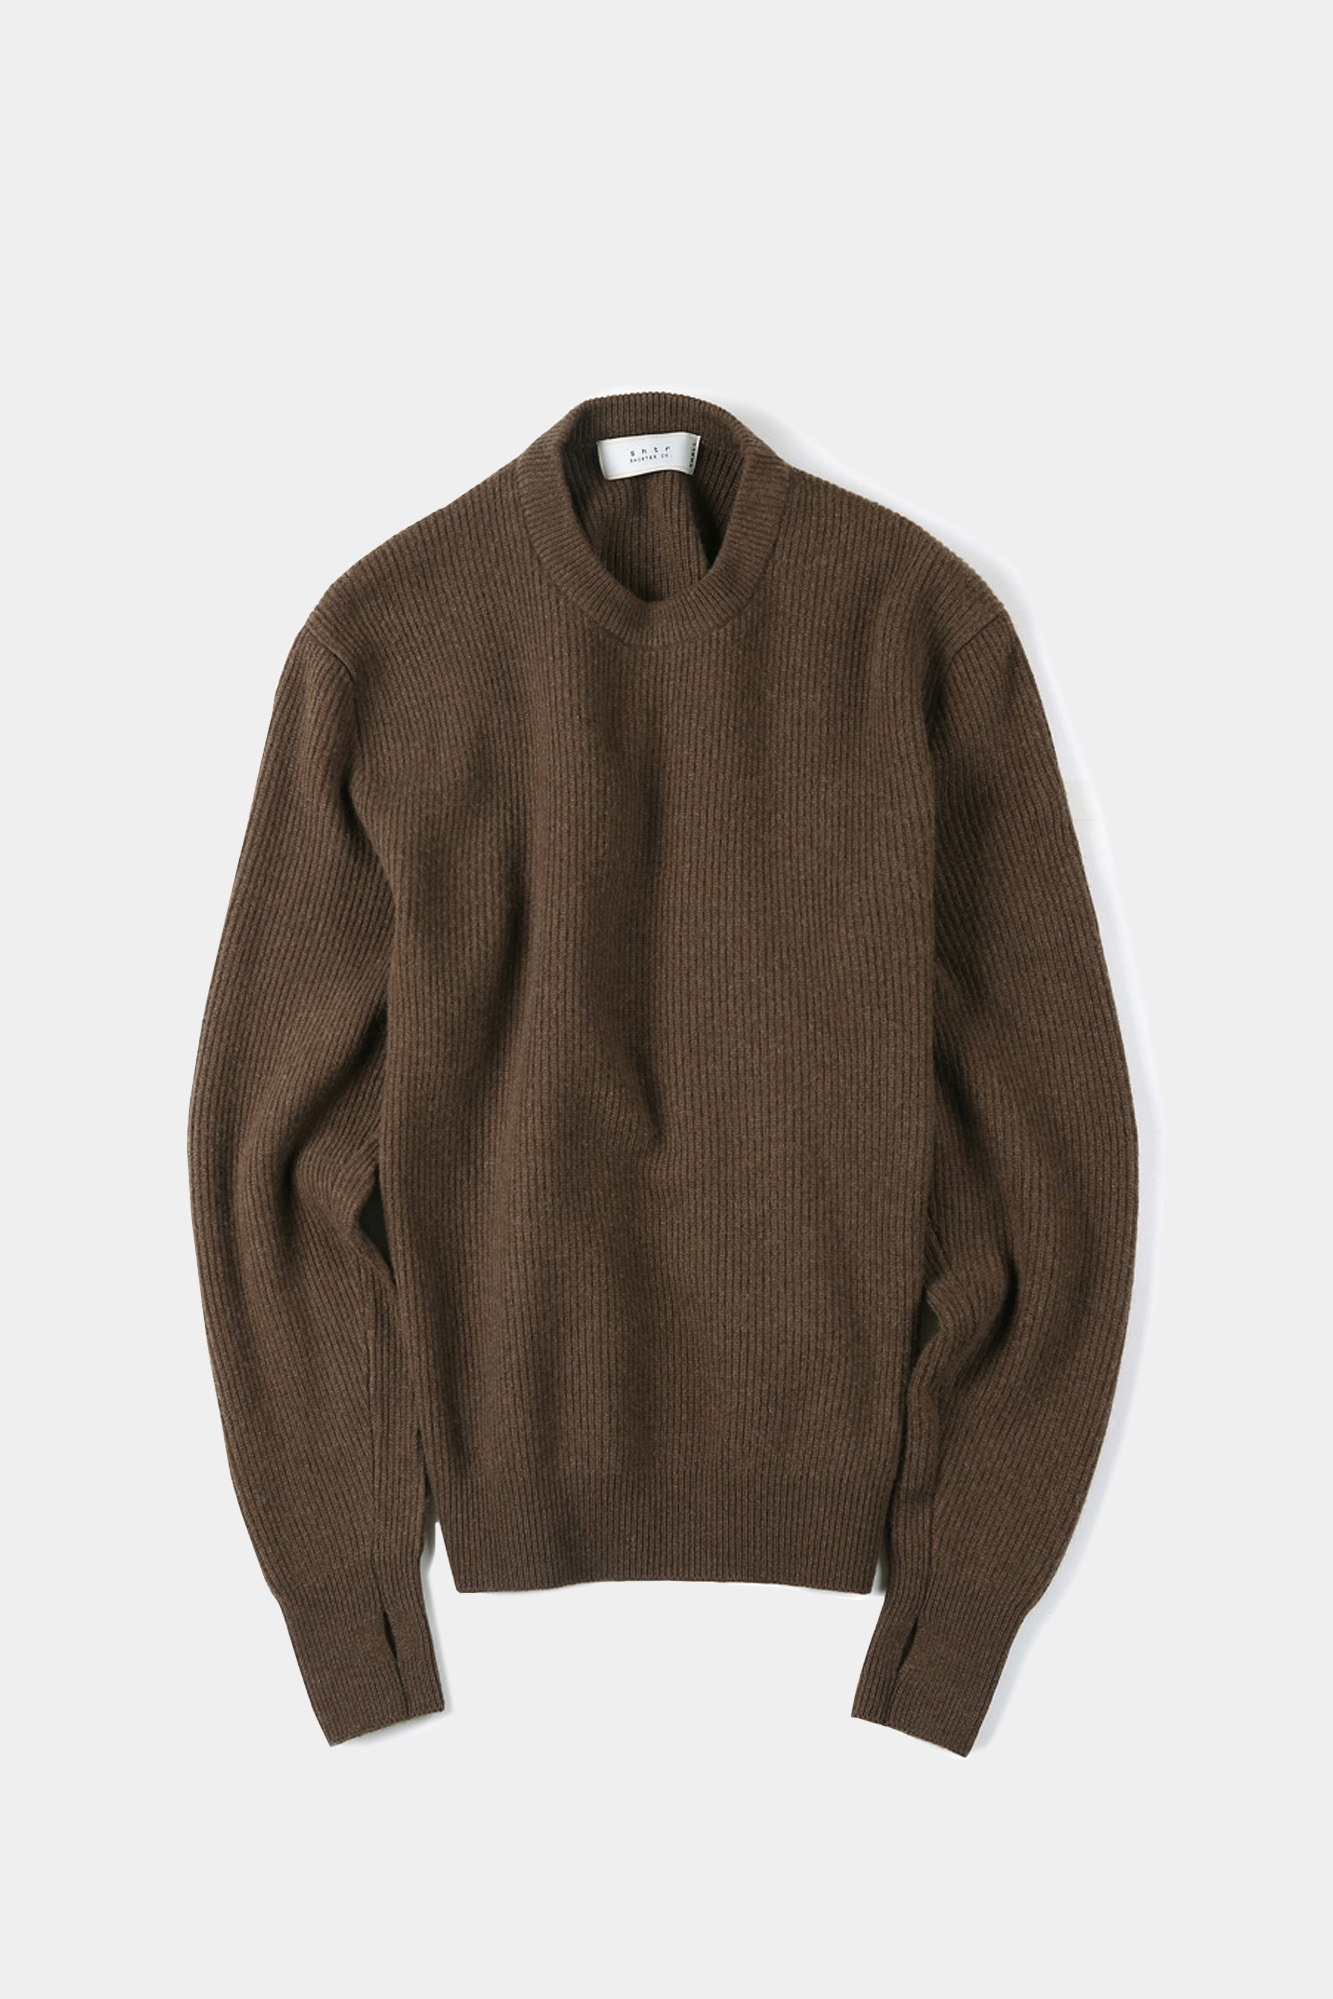 "SHIRTER Wanderer Crew Neck Knit ""Brown"""